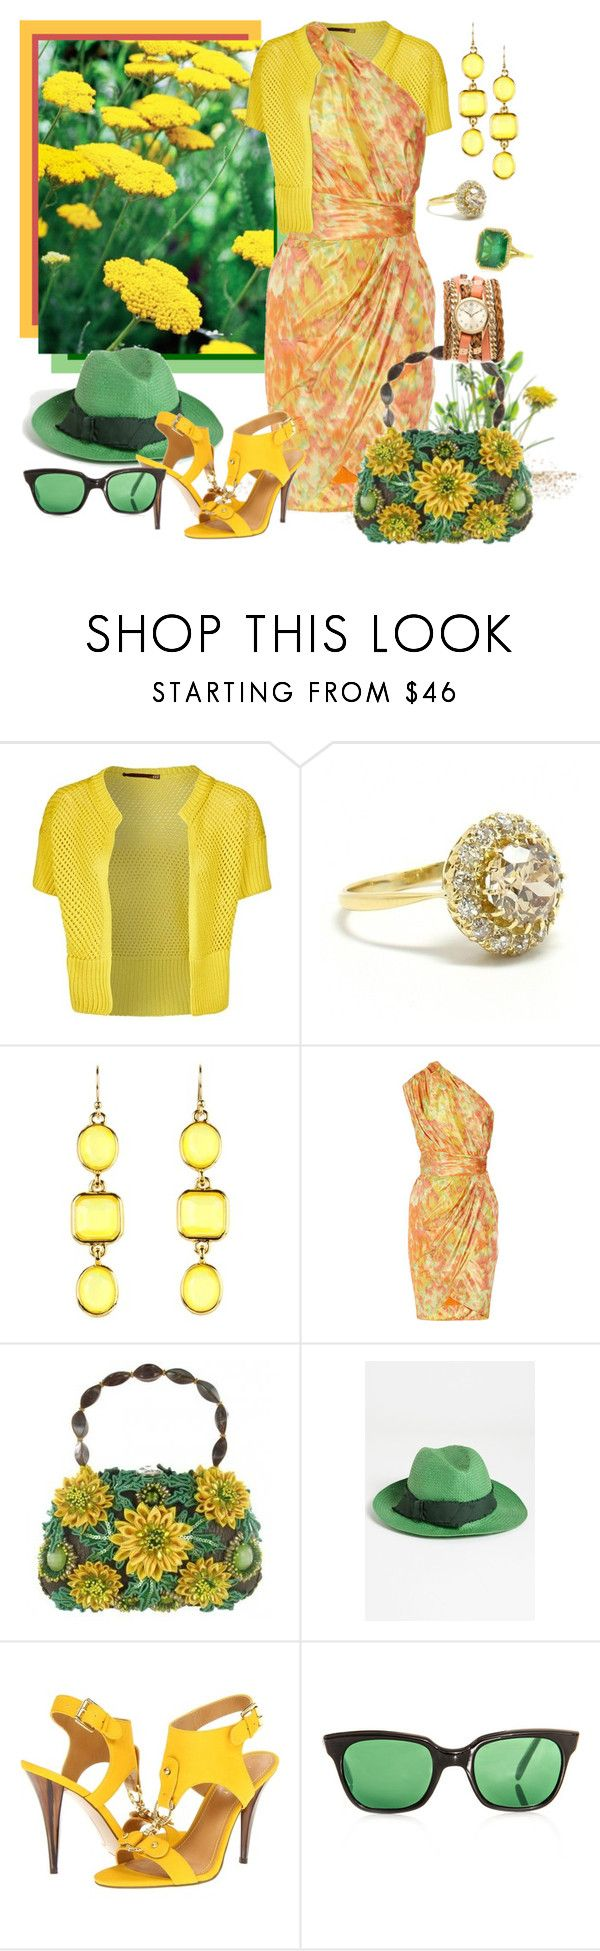 """""""FWF Mary Frances Sunshine Garden Bag"""" by lois-boyce-flack ❤ liked on Polyvore featuring iti, Kate Spade, Lela Rose, Mary Frances Accessories, Tarnish, Nine West, Sheriff&Cherry and Sara Designs"""